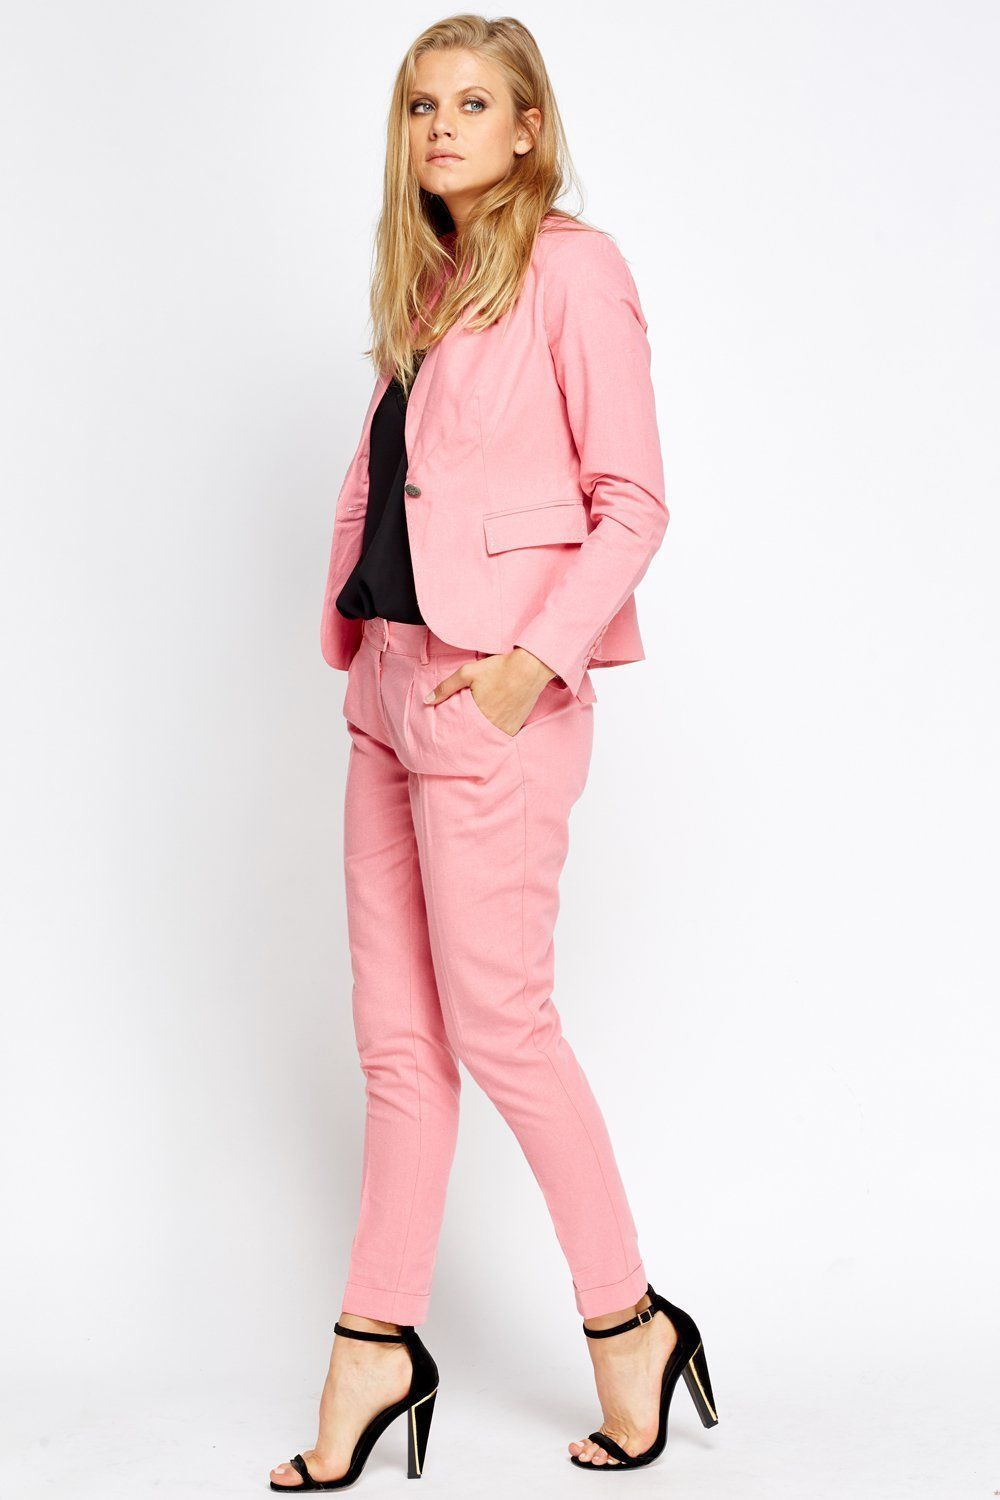 Ladies Trouser Styles | Tailored Trousers image 1